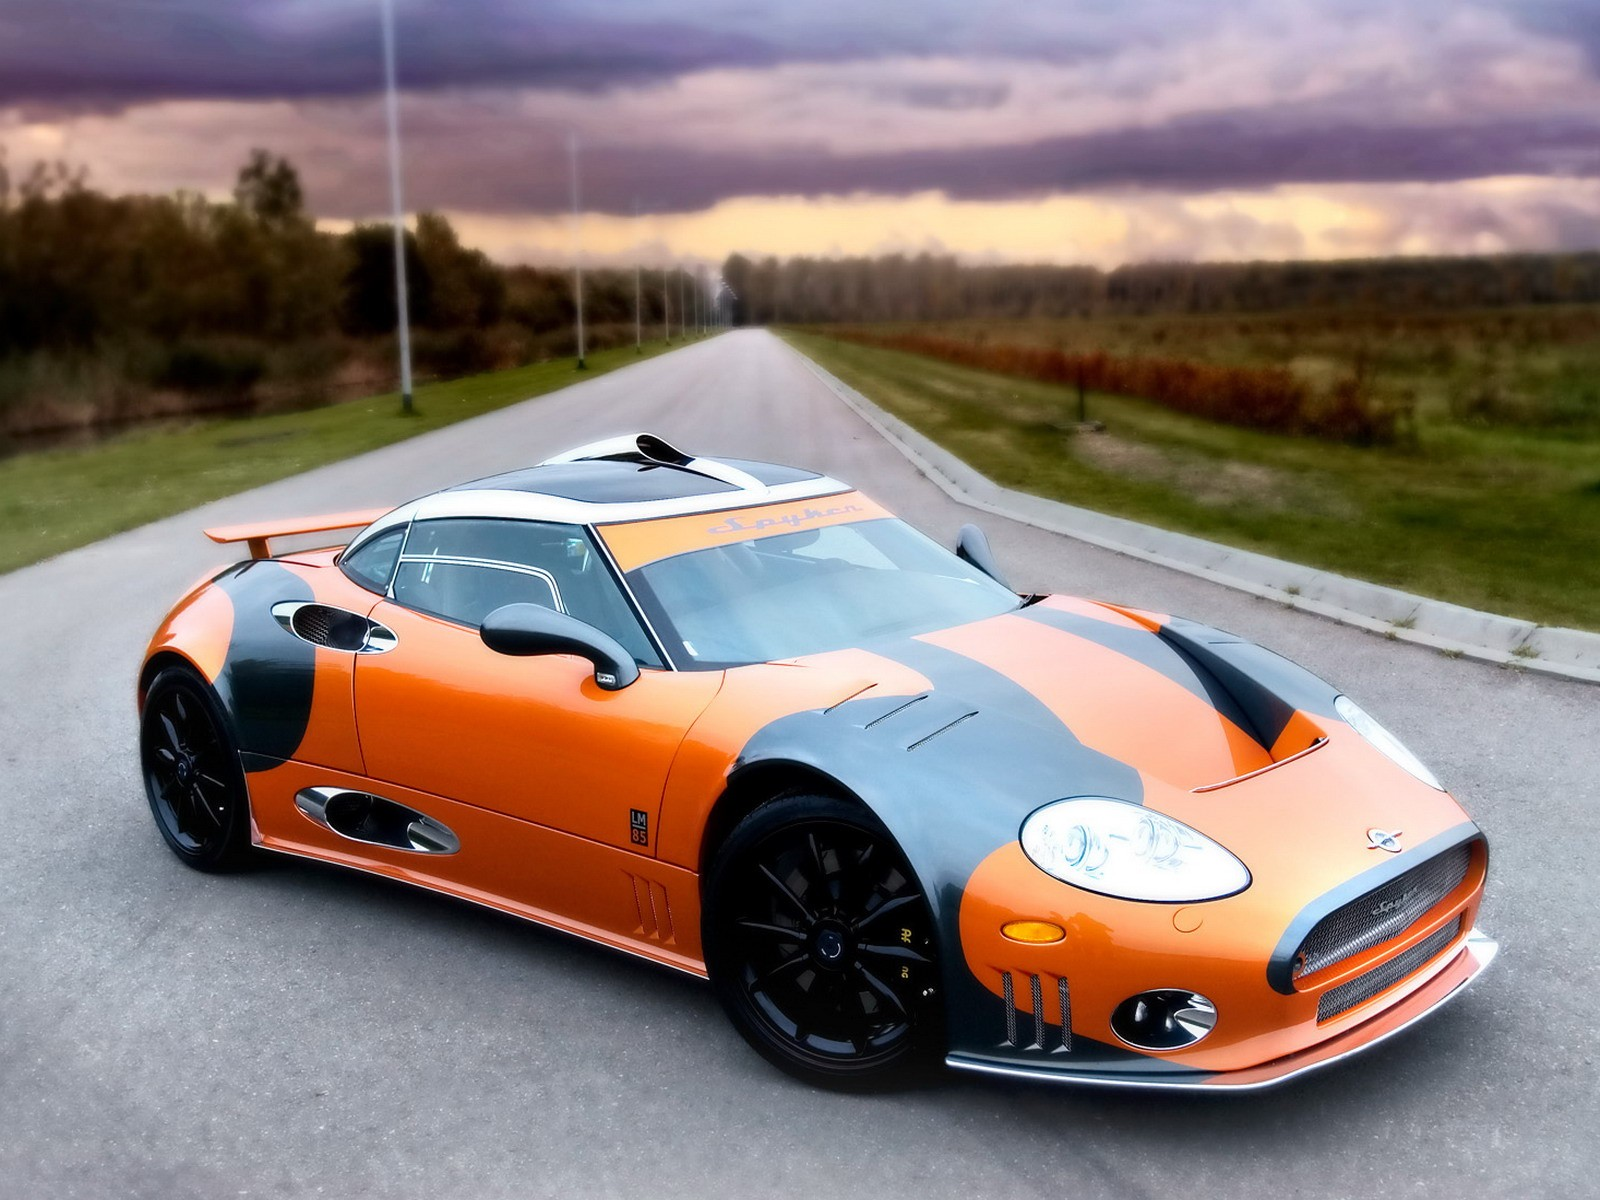 cool car picture 4